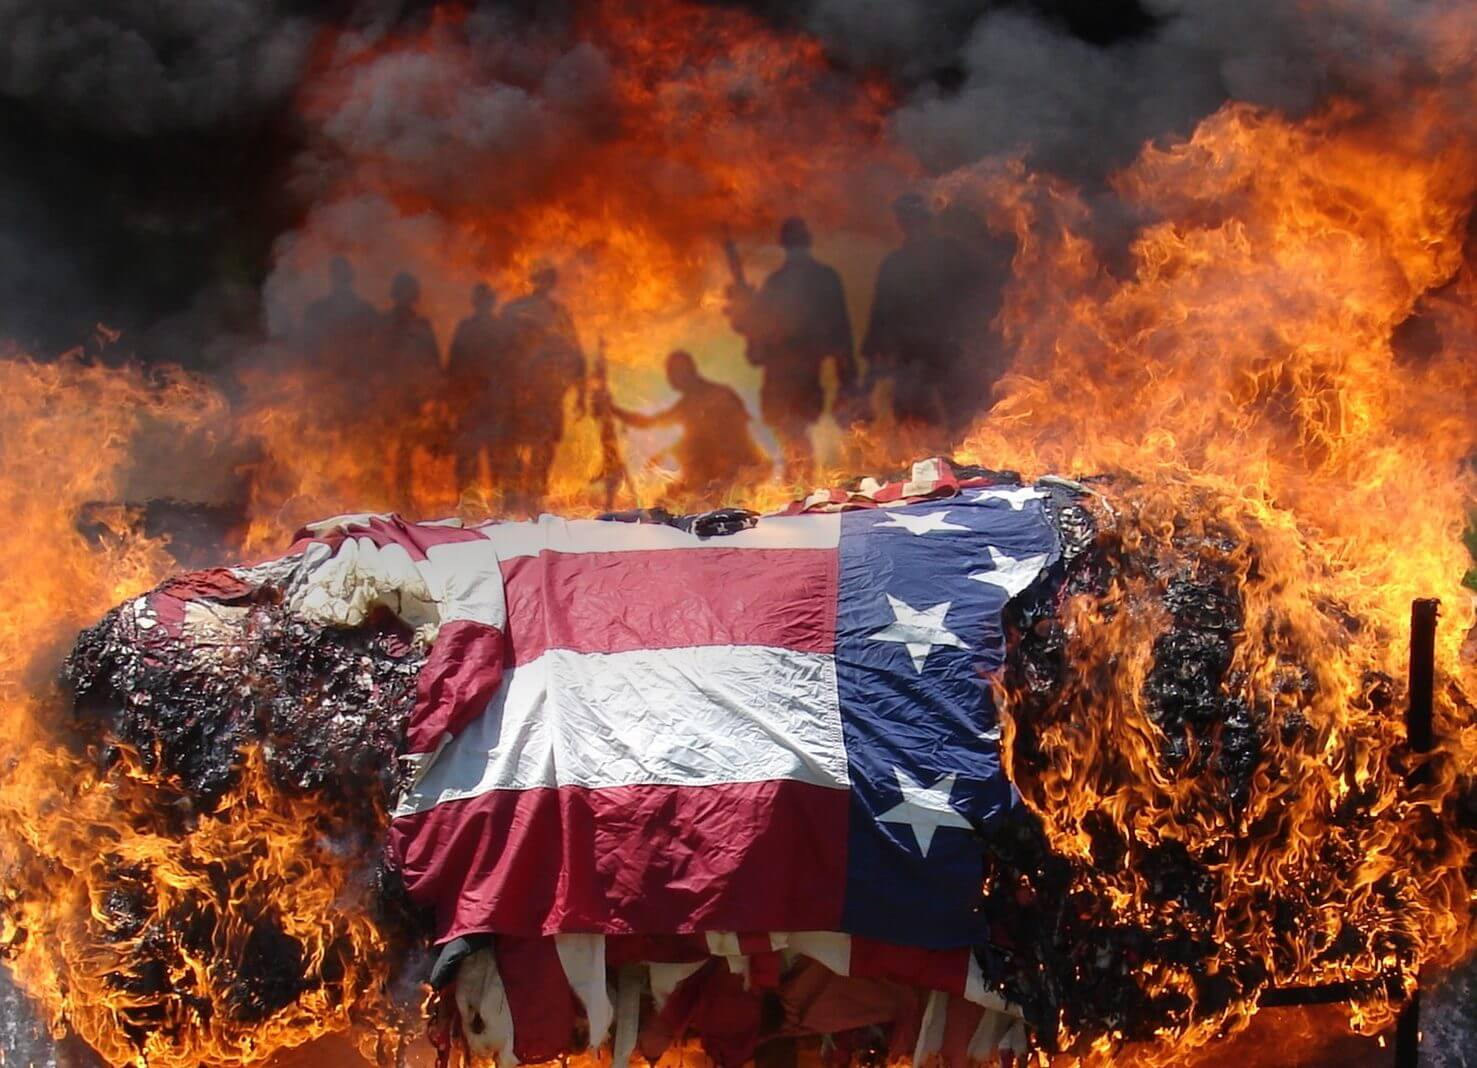 Artistic rendering: flag engulfed in flames, silhouettes of soldiers in the background smoke.